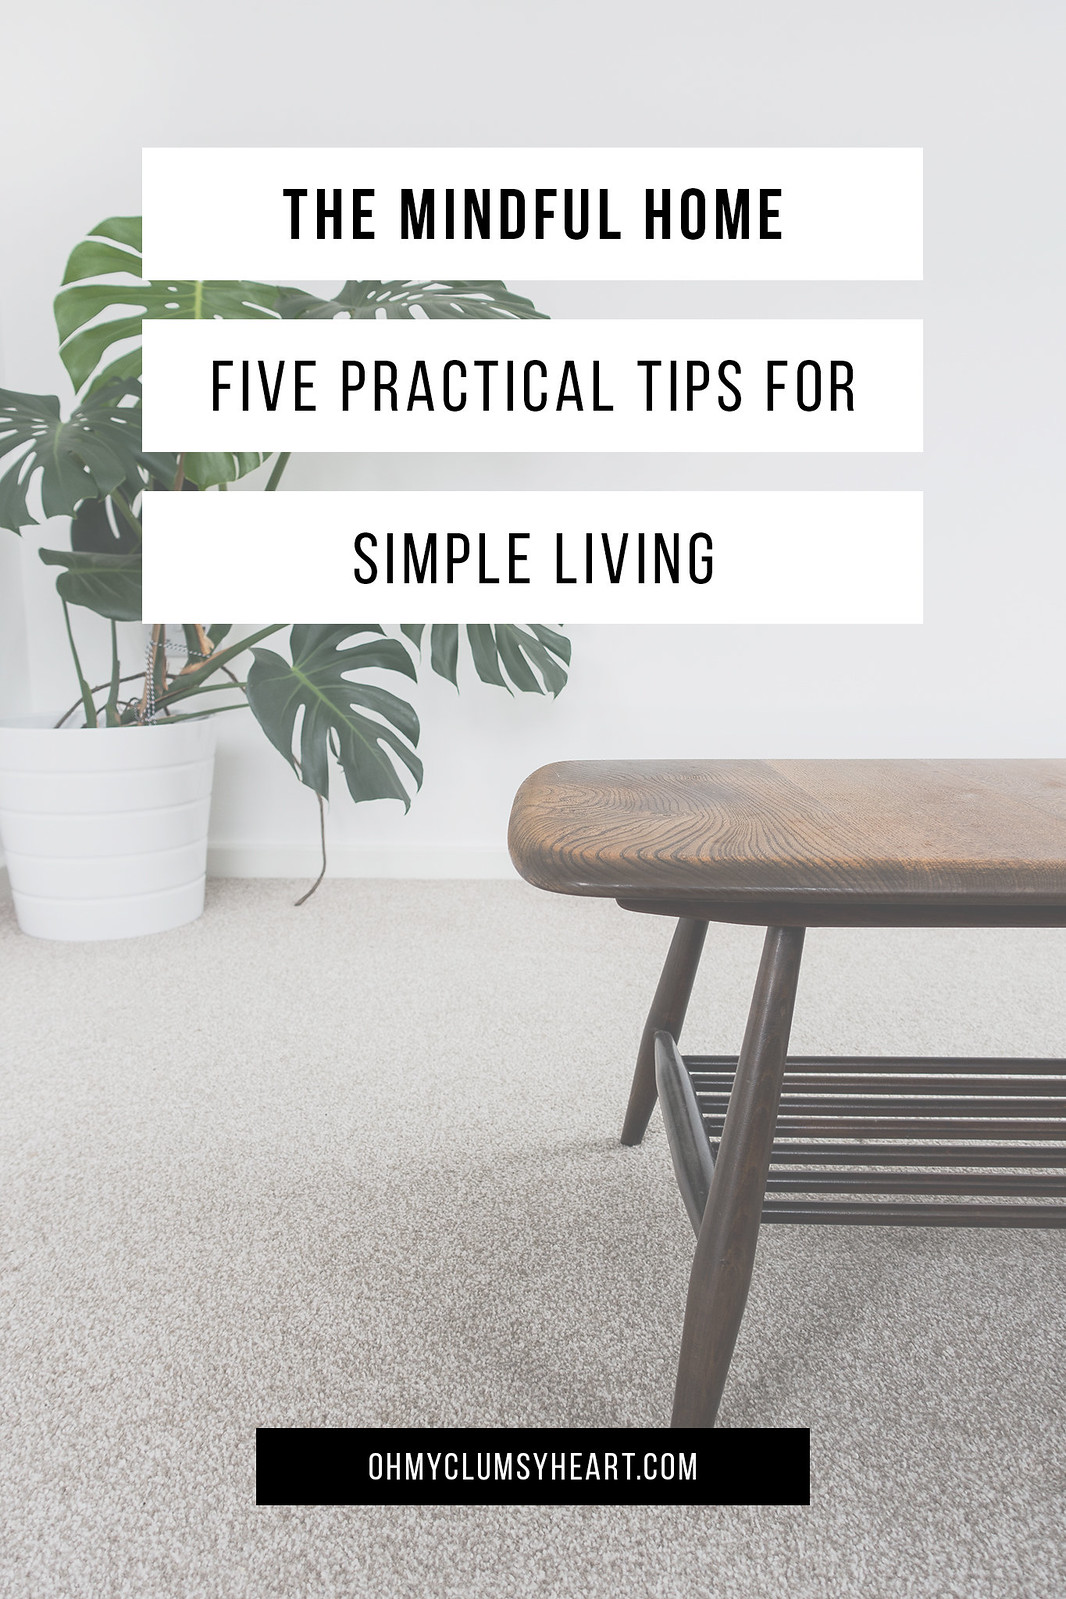 The Mindful Home: 5 Practical Tips For Simple Living